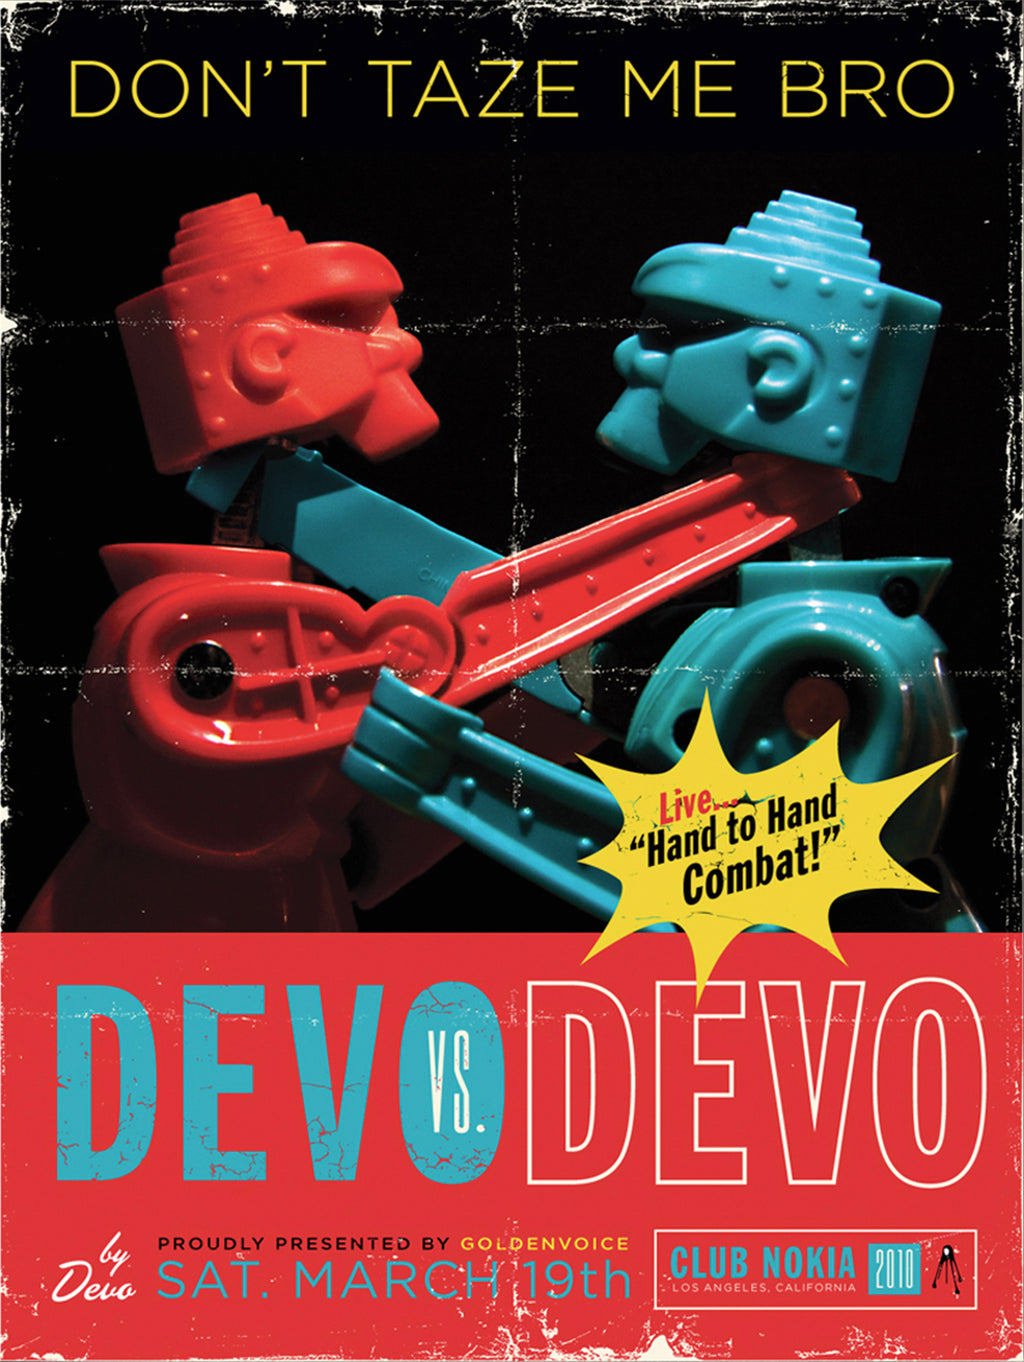 DEVO - CLUB NOKIA